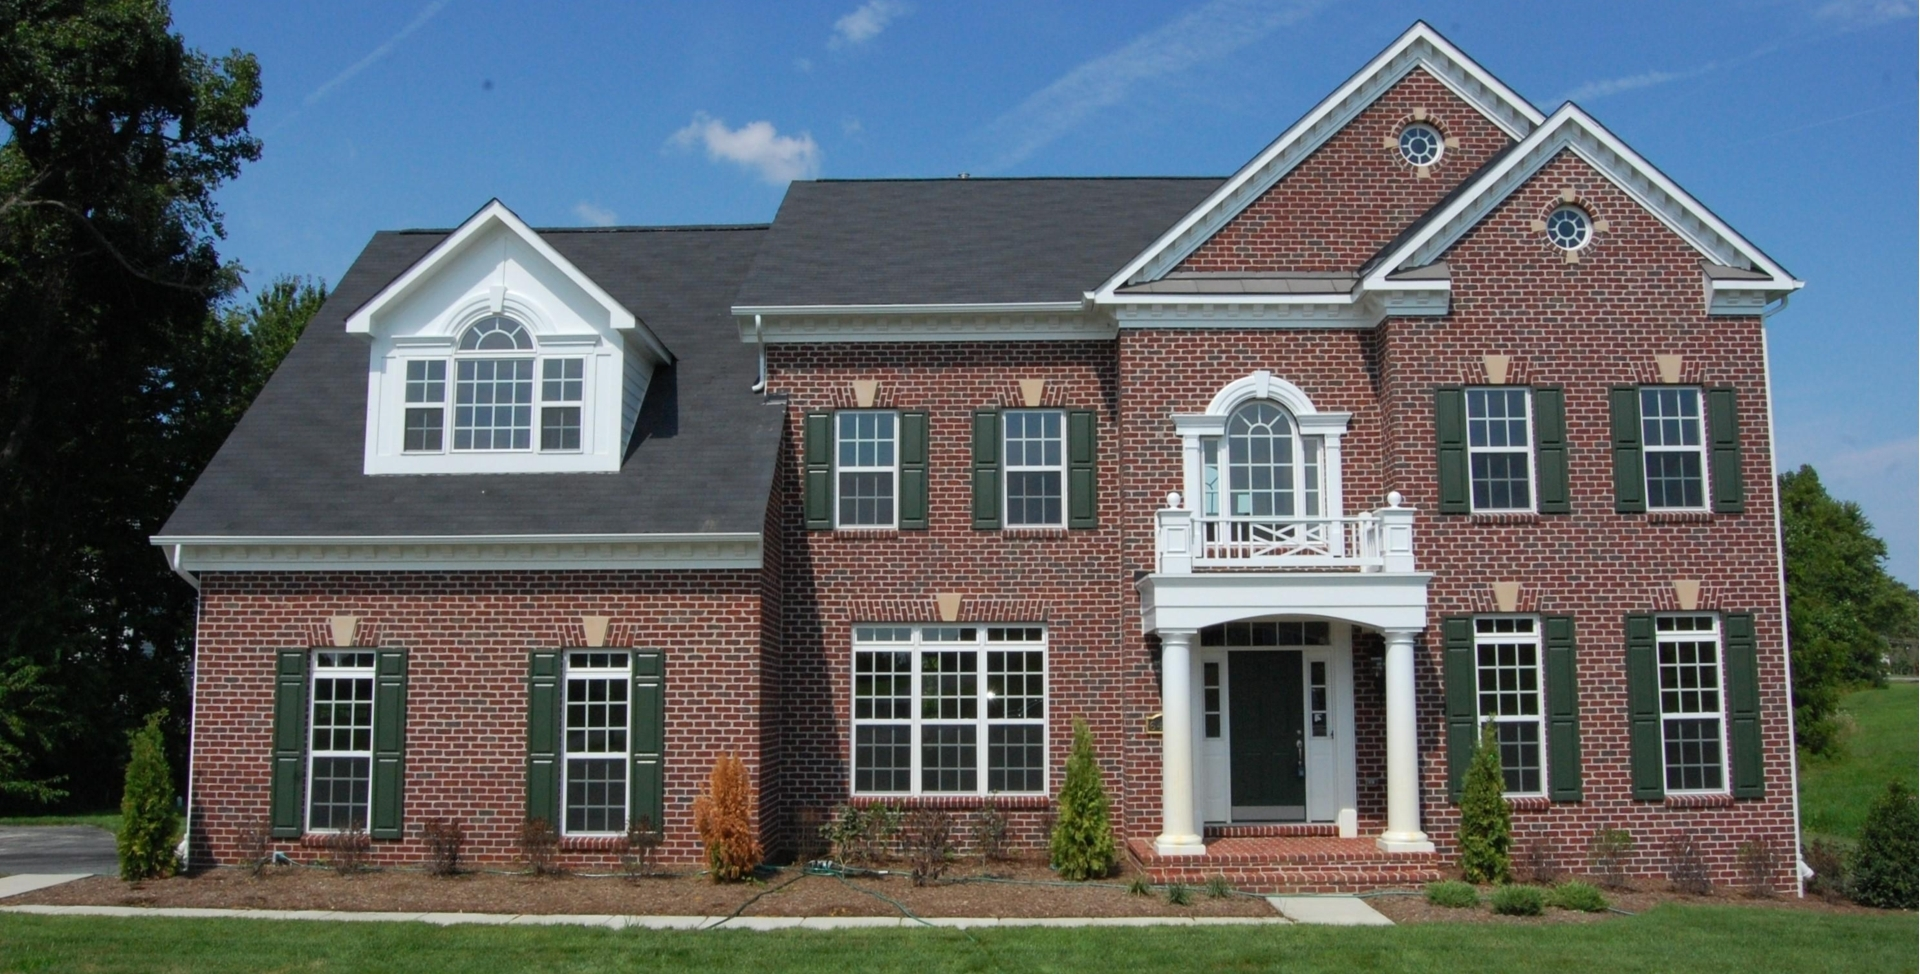 New Luxury Homes In Prince Georges County Maryland MidAtlantic - Single family home designs